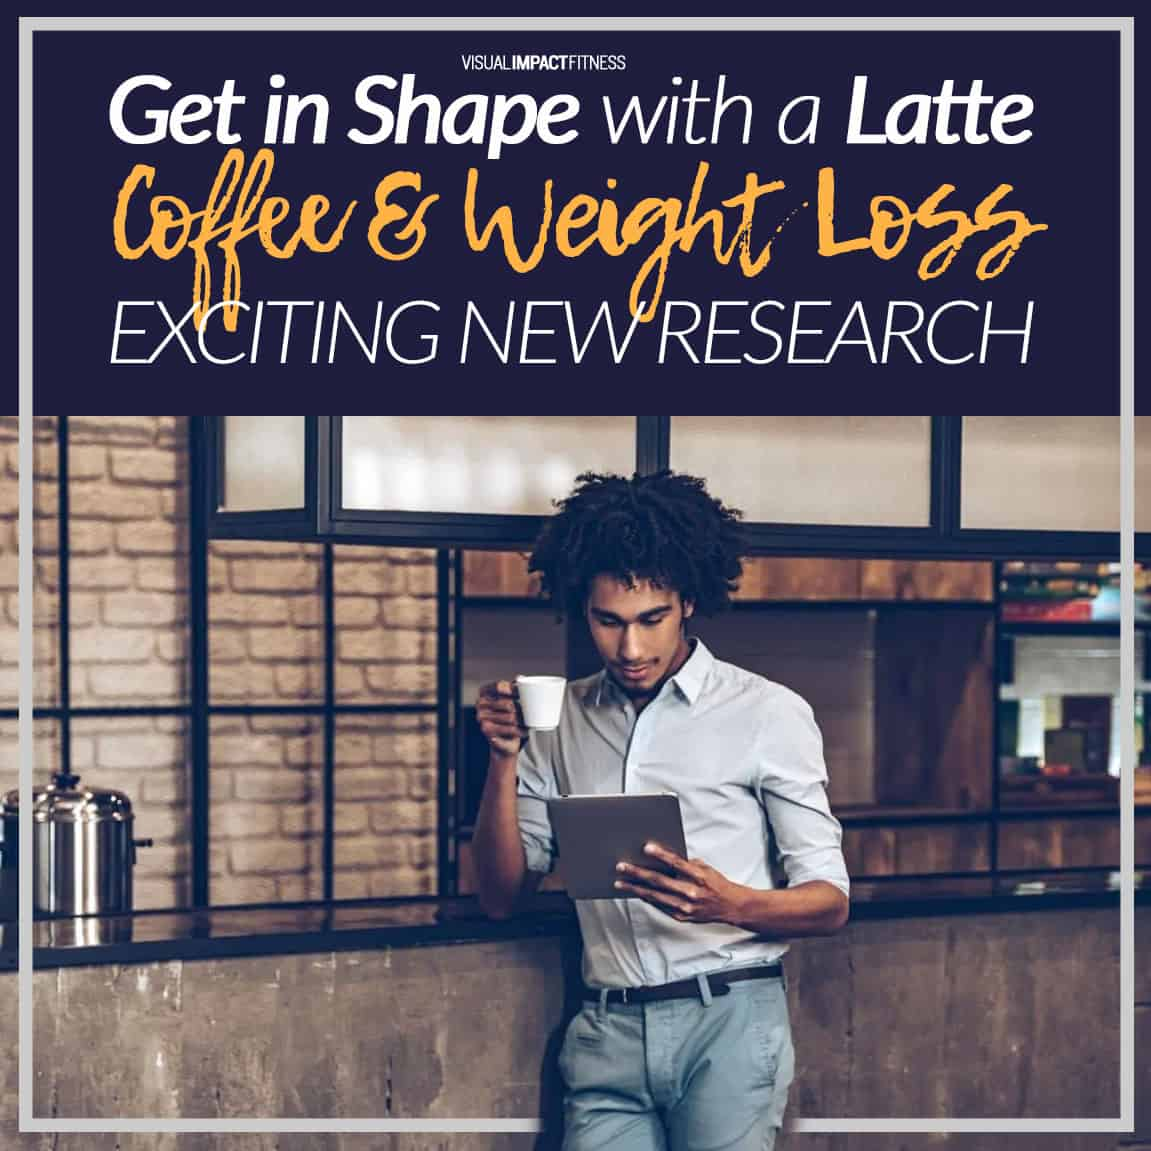 Coffee & Weight Loss: Exciting New Research (2021)